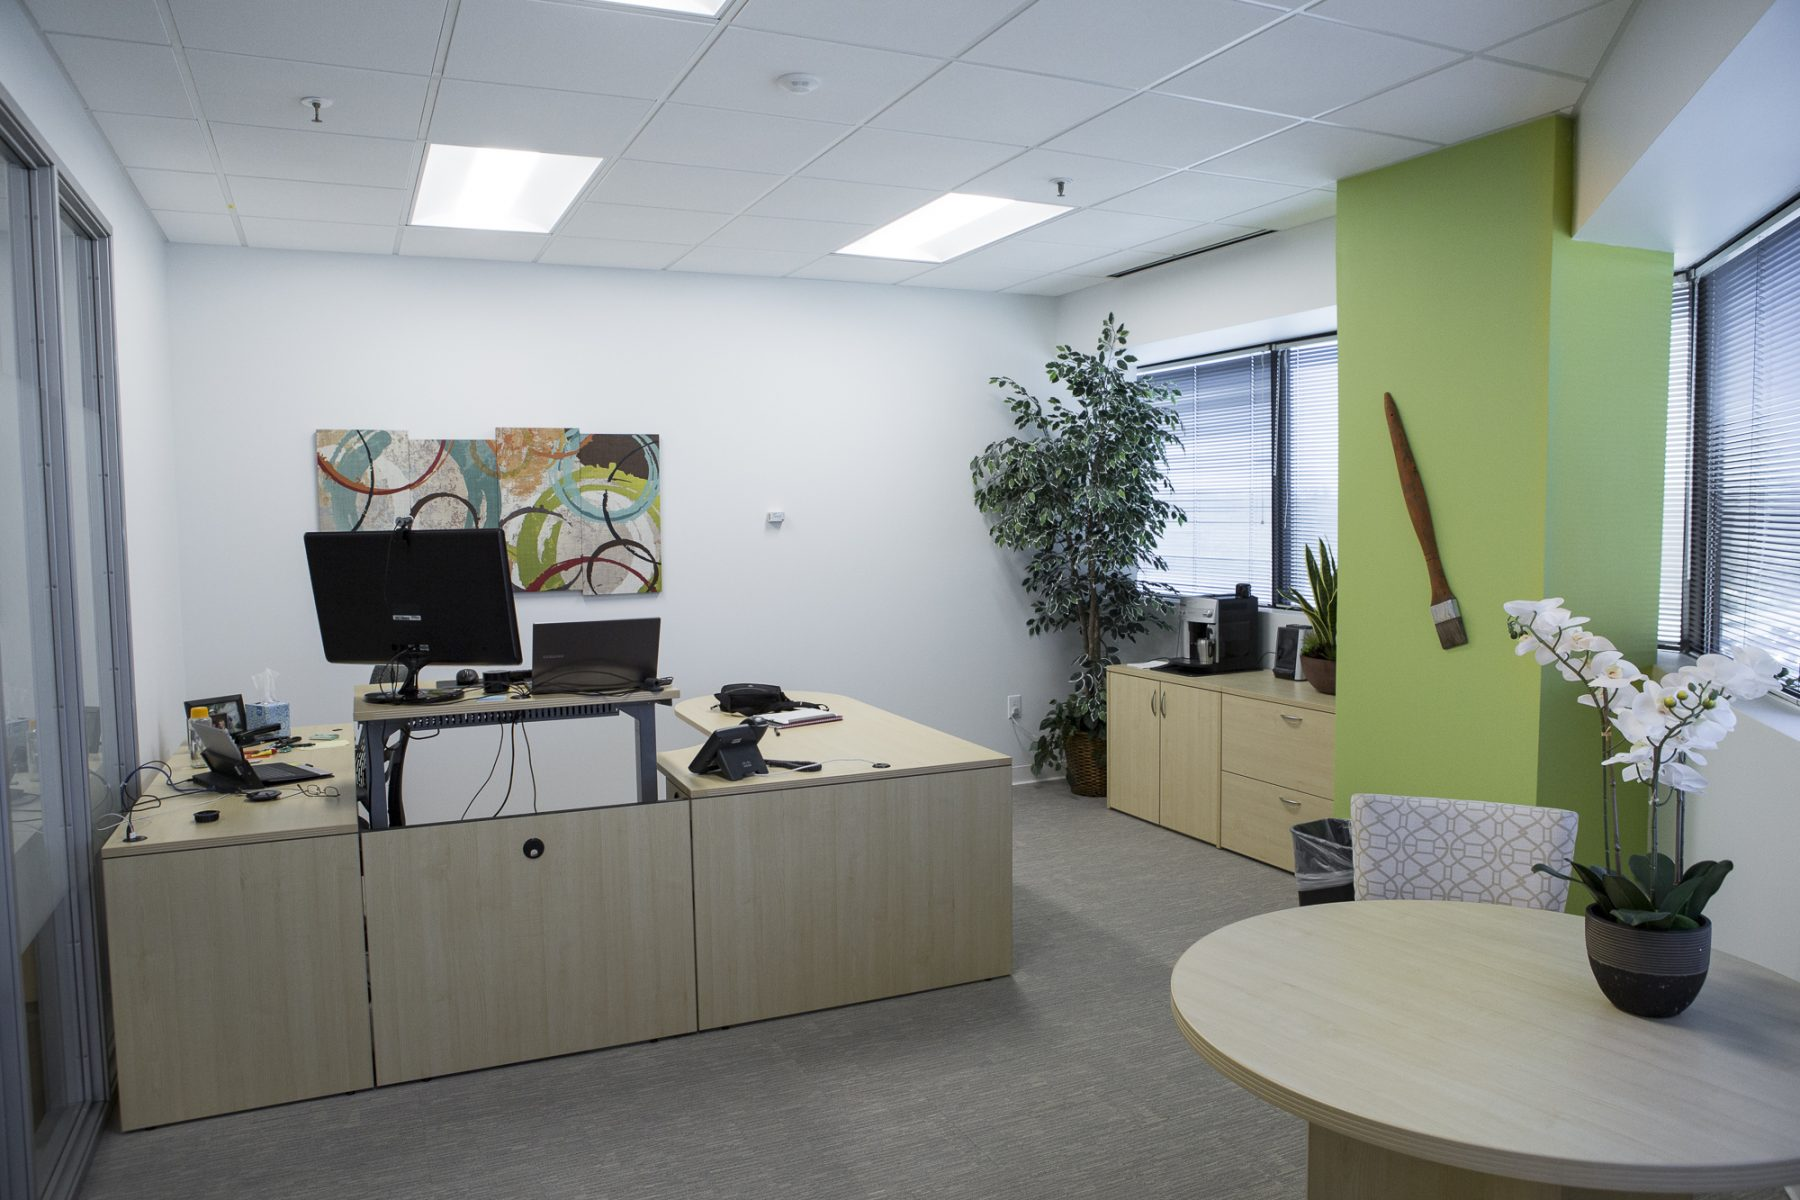 clinical-architects-capital-construction-indianapolis-13